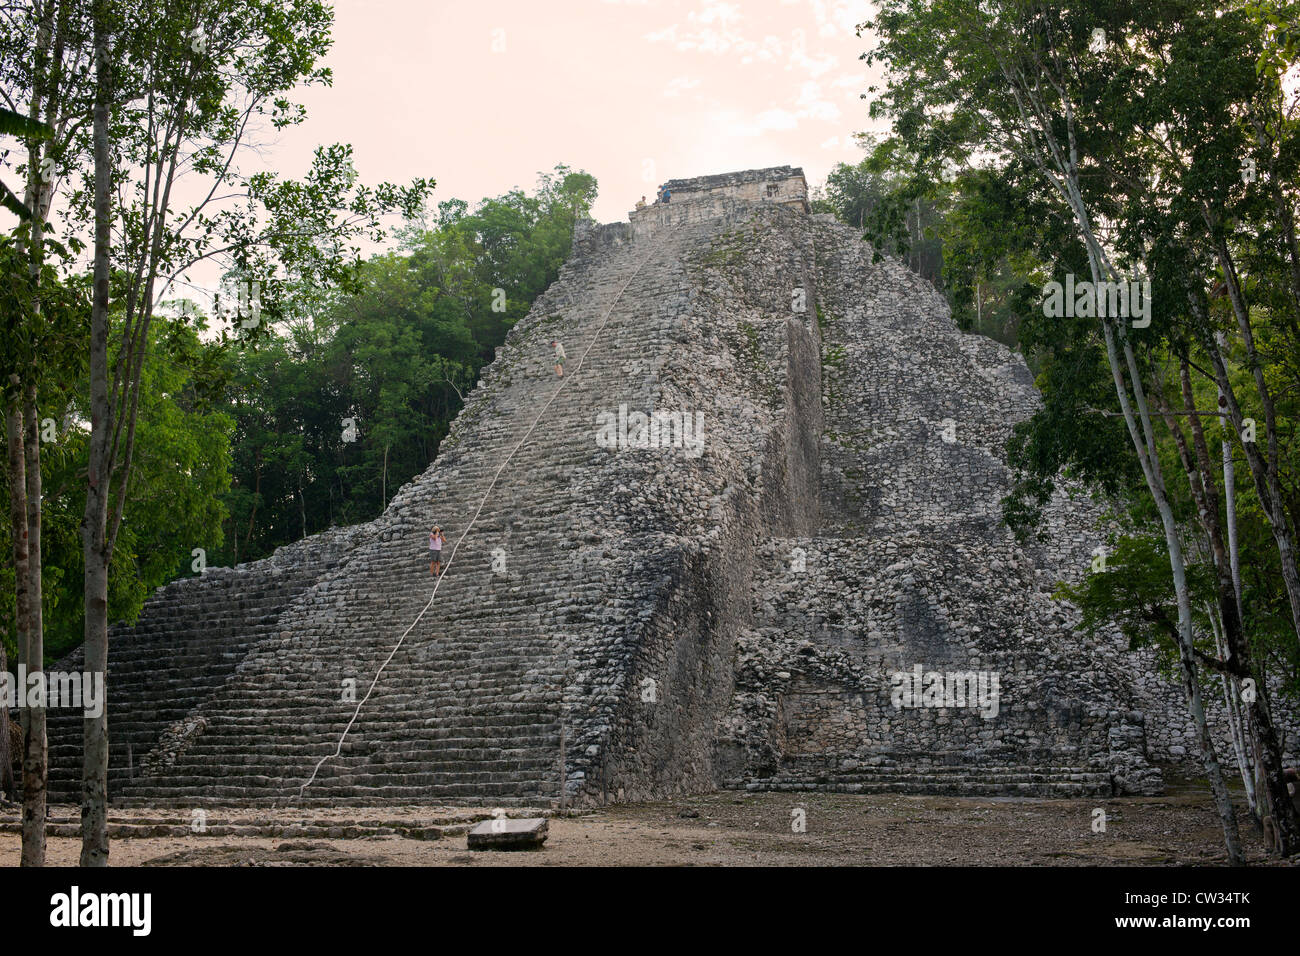 Mexico,Quintana Roo,Coba,Nohoch Mul also known as the Great Pyramid - Stock Image